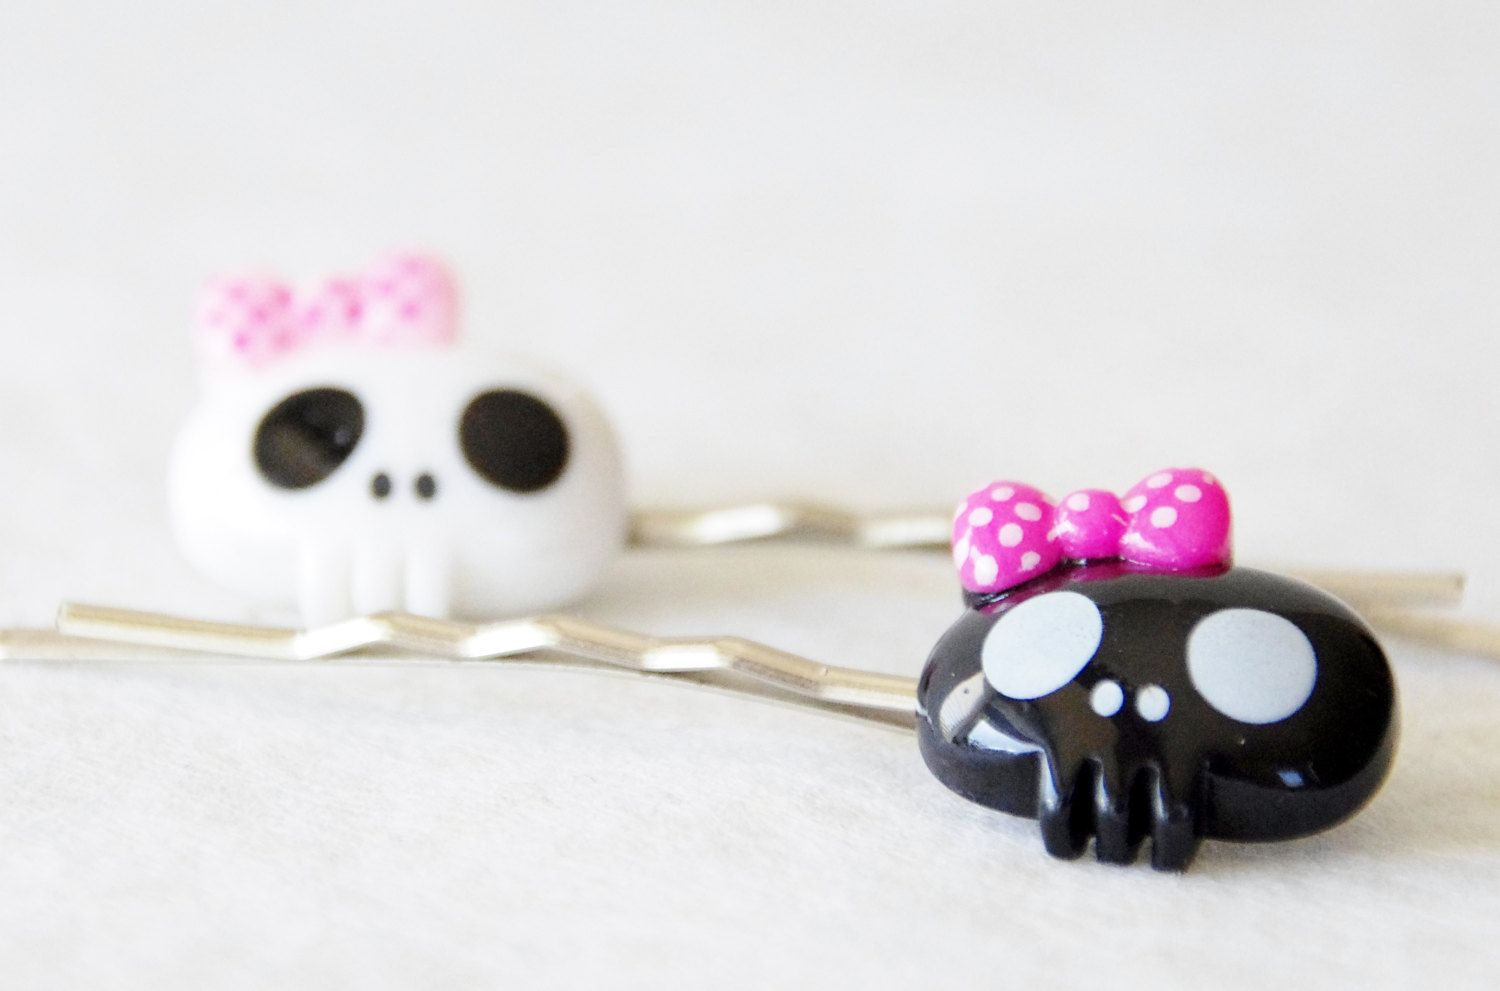 Bobby Pins Barrettes Hair Styling Clips Girly Skull And Crossbones